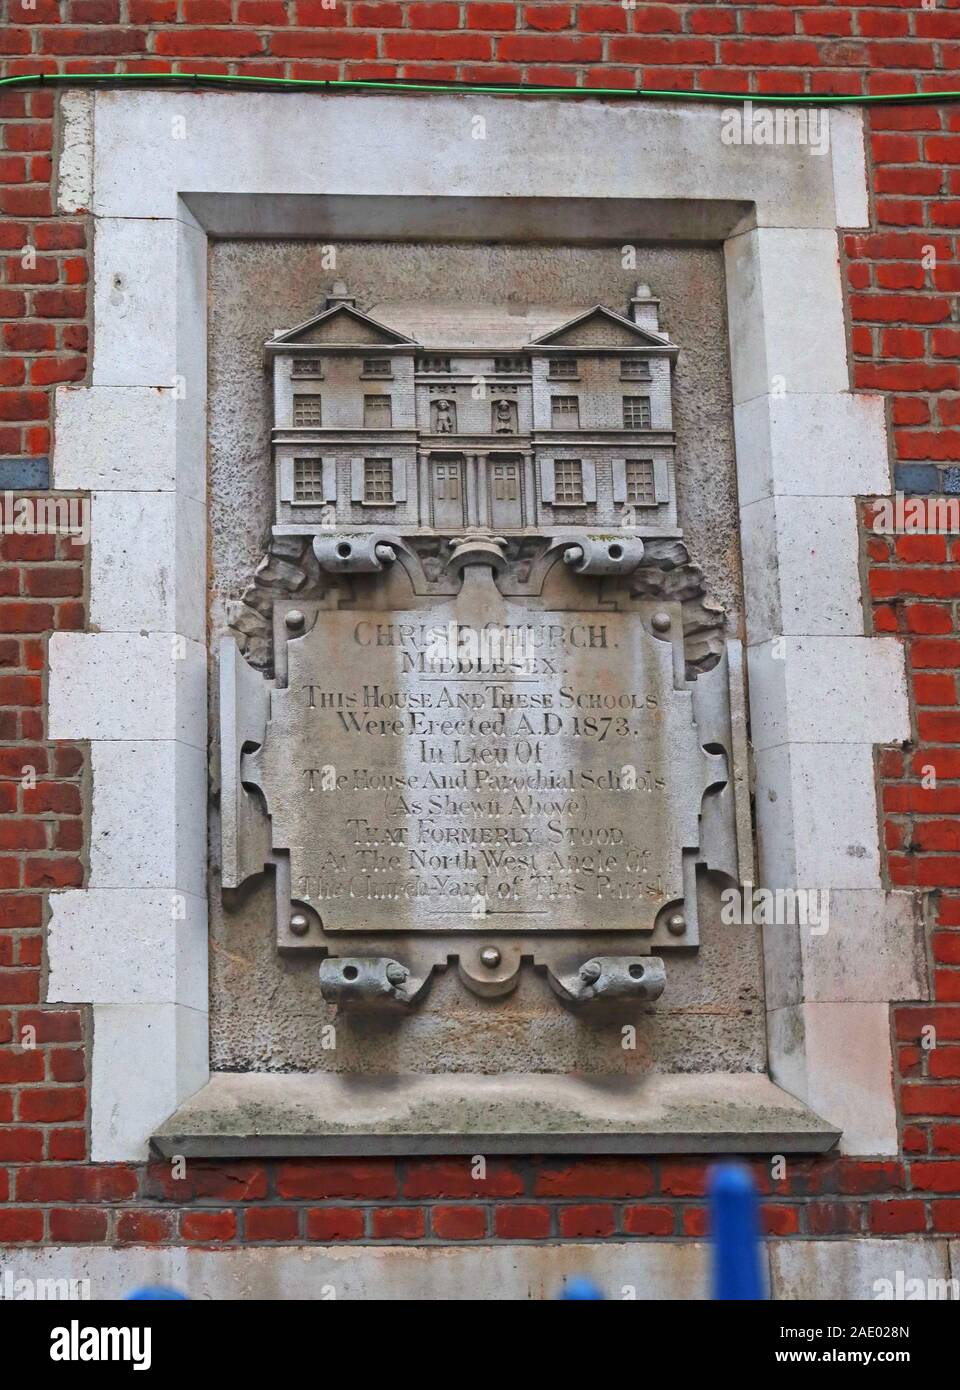 Dieses Stockfoto: Christ Church AD1873, Middlesex Schule, Plakette, 47a Brick Lane, Shoreditch, East End, London, England, UK, E1 - 2AE028